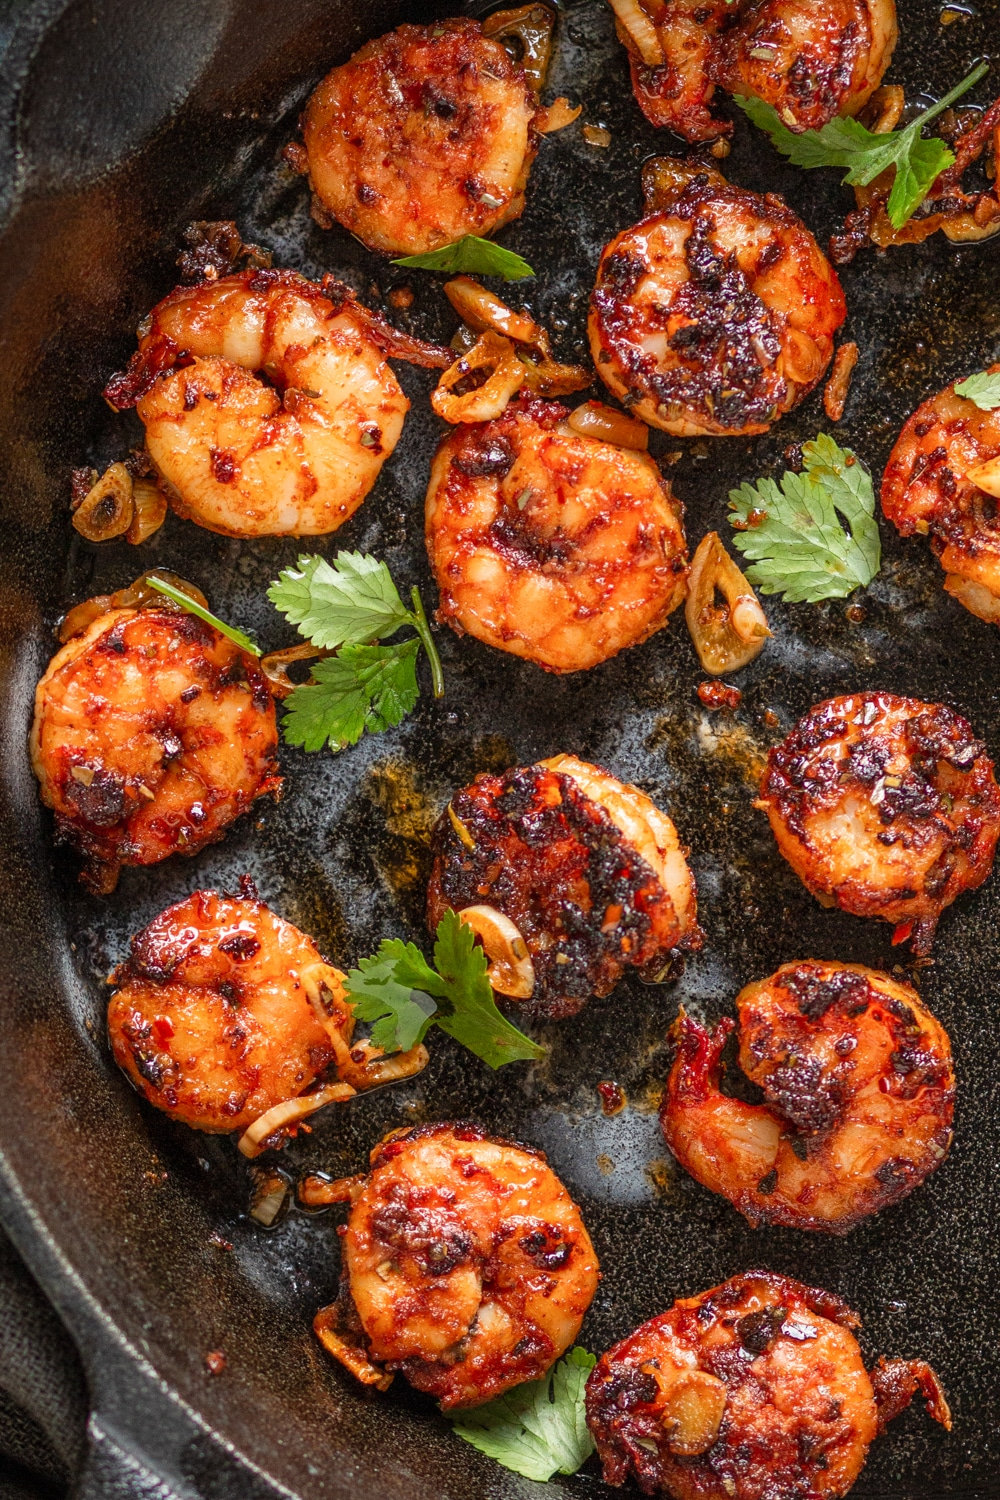 Blackened shrimp topped with fresh parsley in a cast iron pan